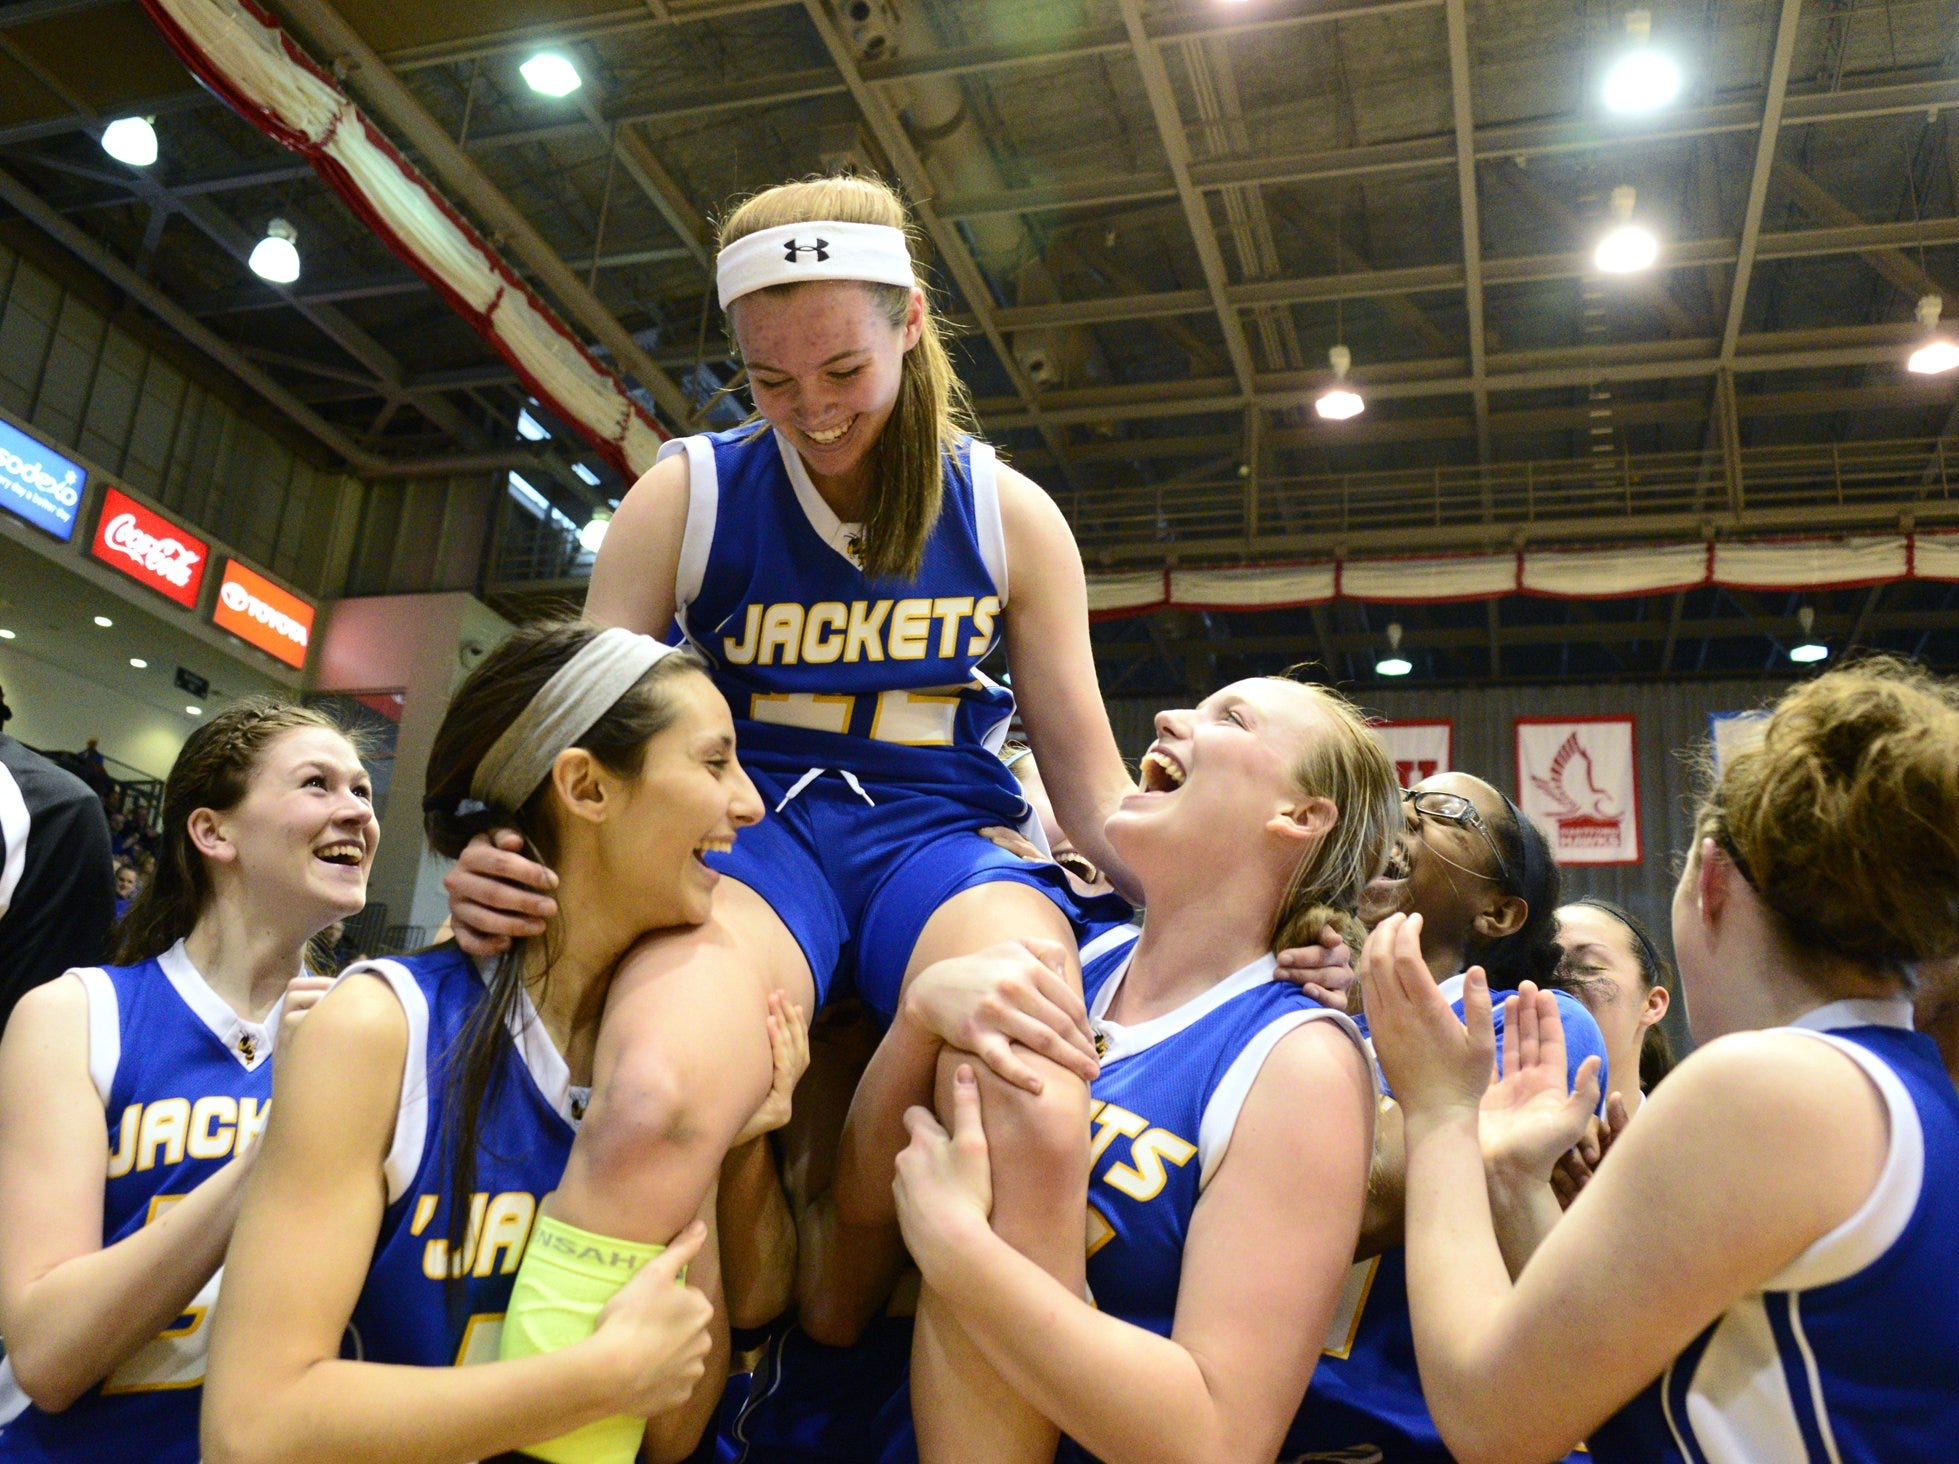 2013: Oneonta's Rachel Wessells and Kelsey Baker hoist Minnie Webster onto their shoulders to celebrate Webster's winning basket Sunday.